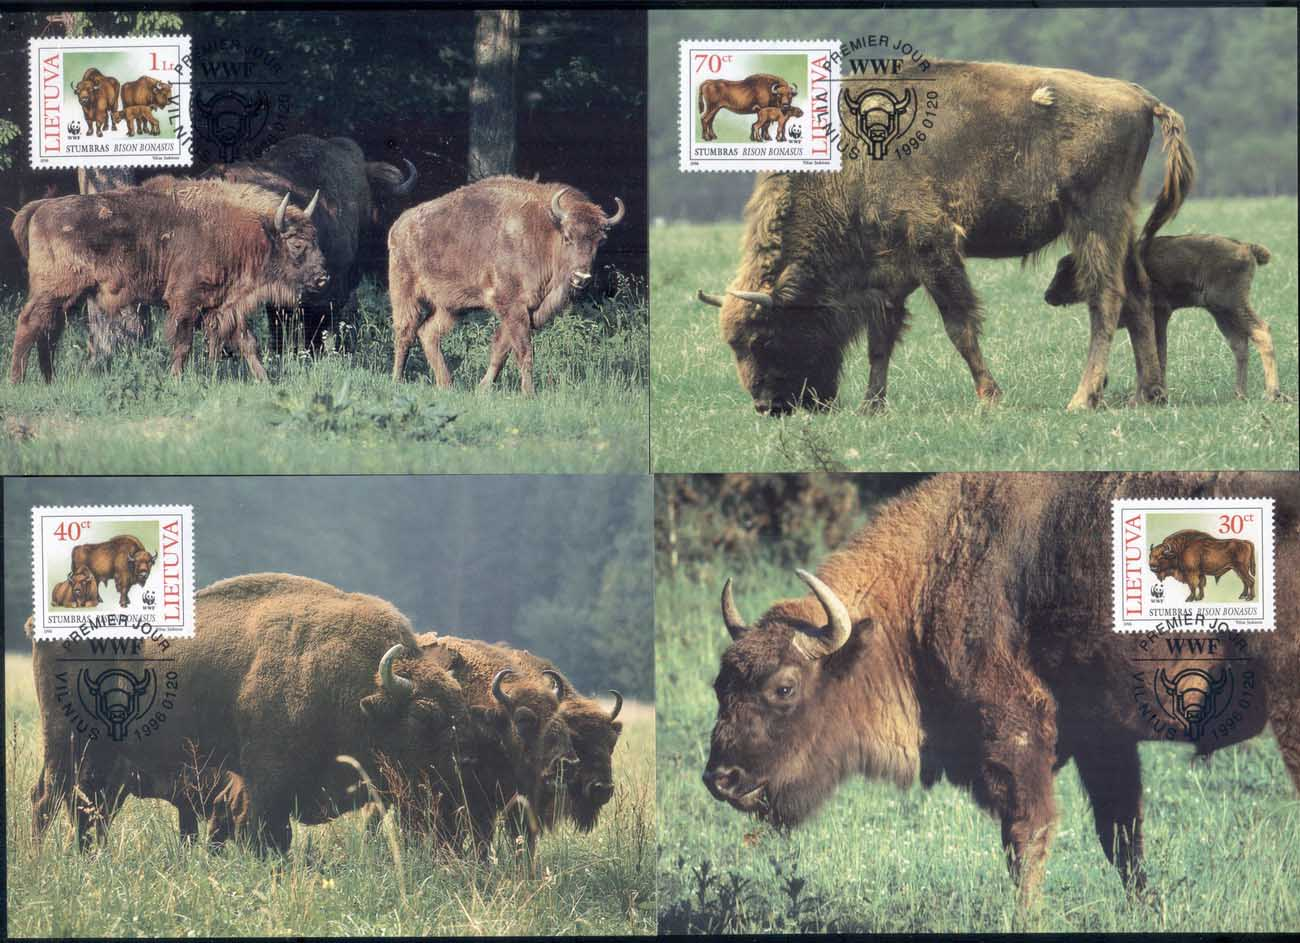 Lithuania 1996 WWF European Bison Maxicards